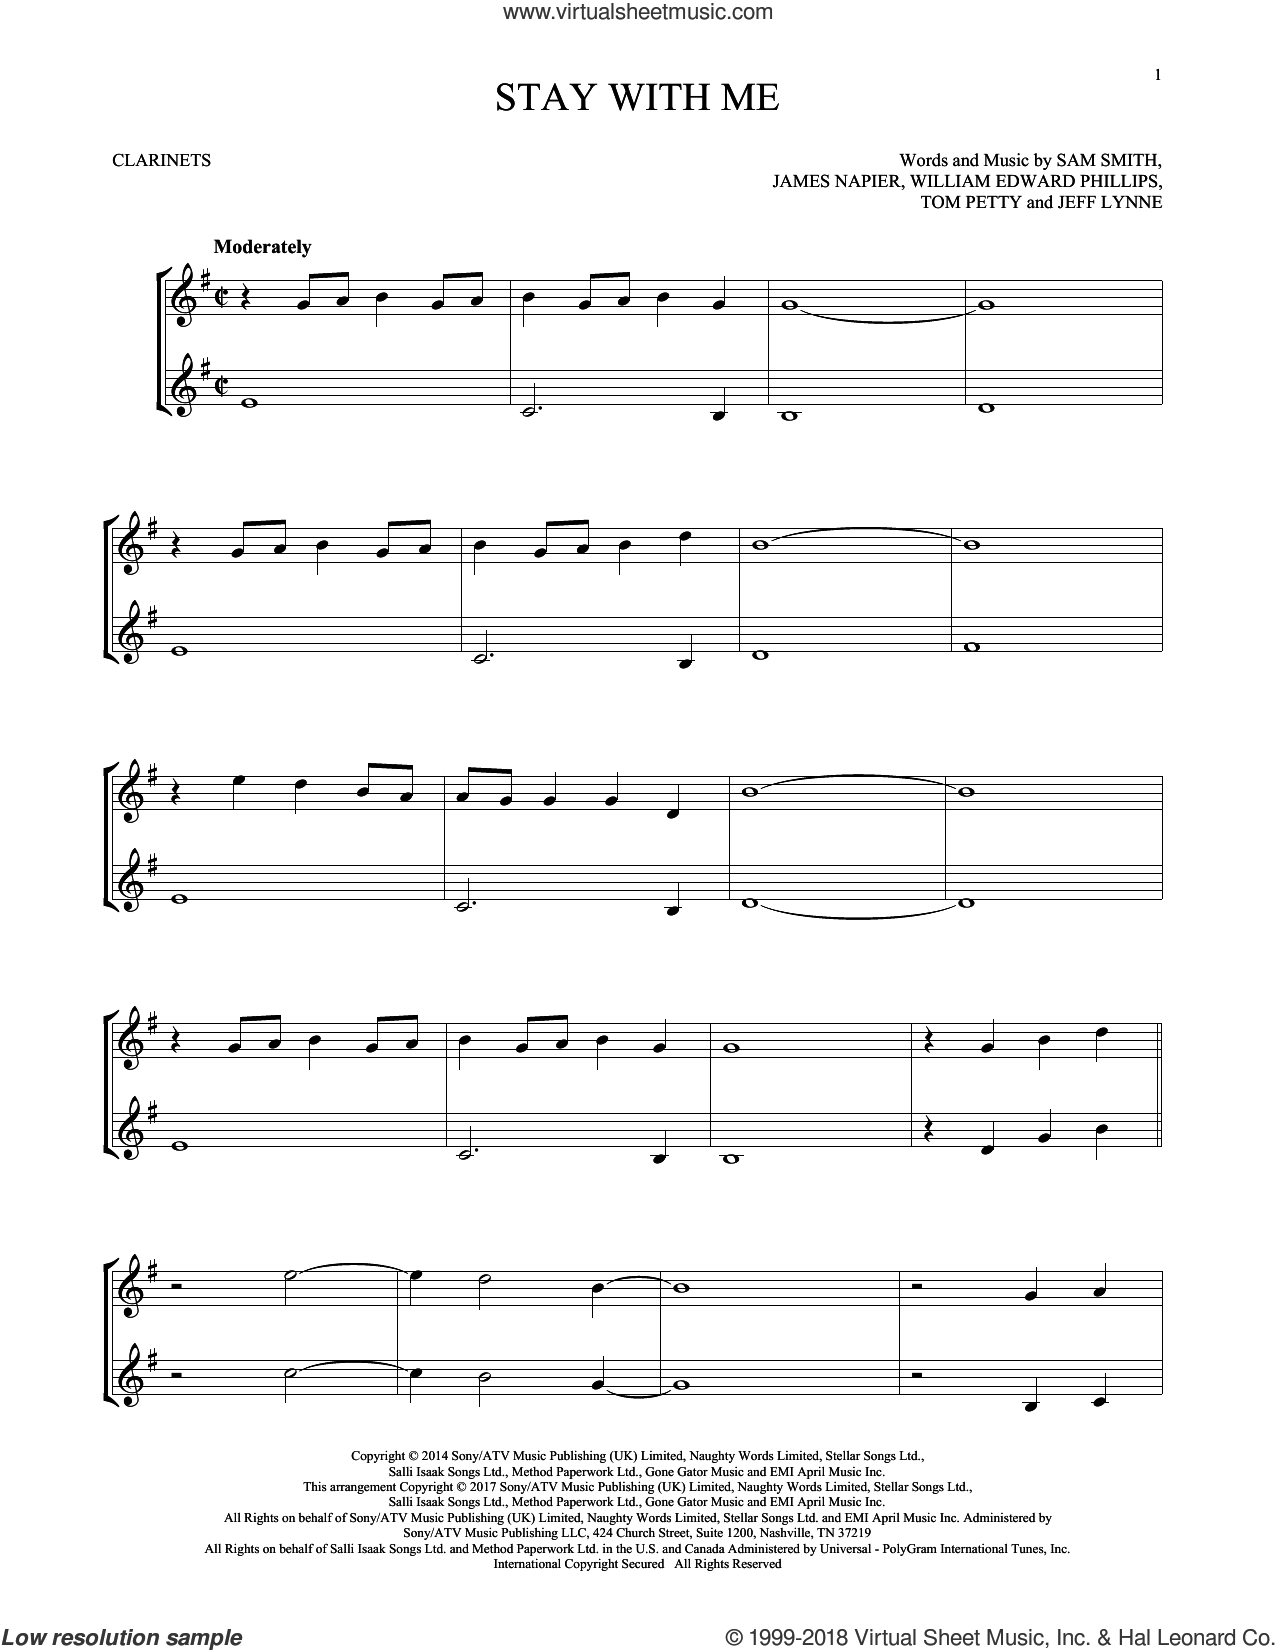 Stay With Me sheet music for two clarinets (duets) by Sam Smith, James Napier, Jeff Lynne, Tom Petty and William Edward Phillips, intermediate skill level